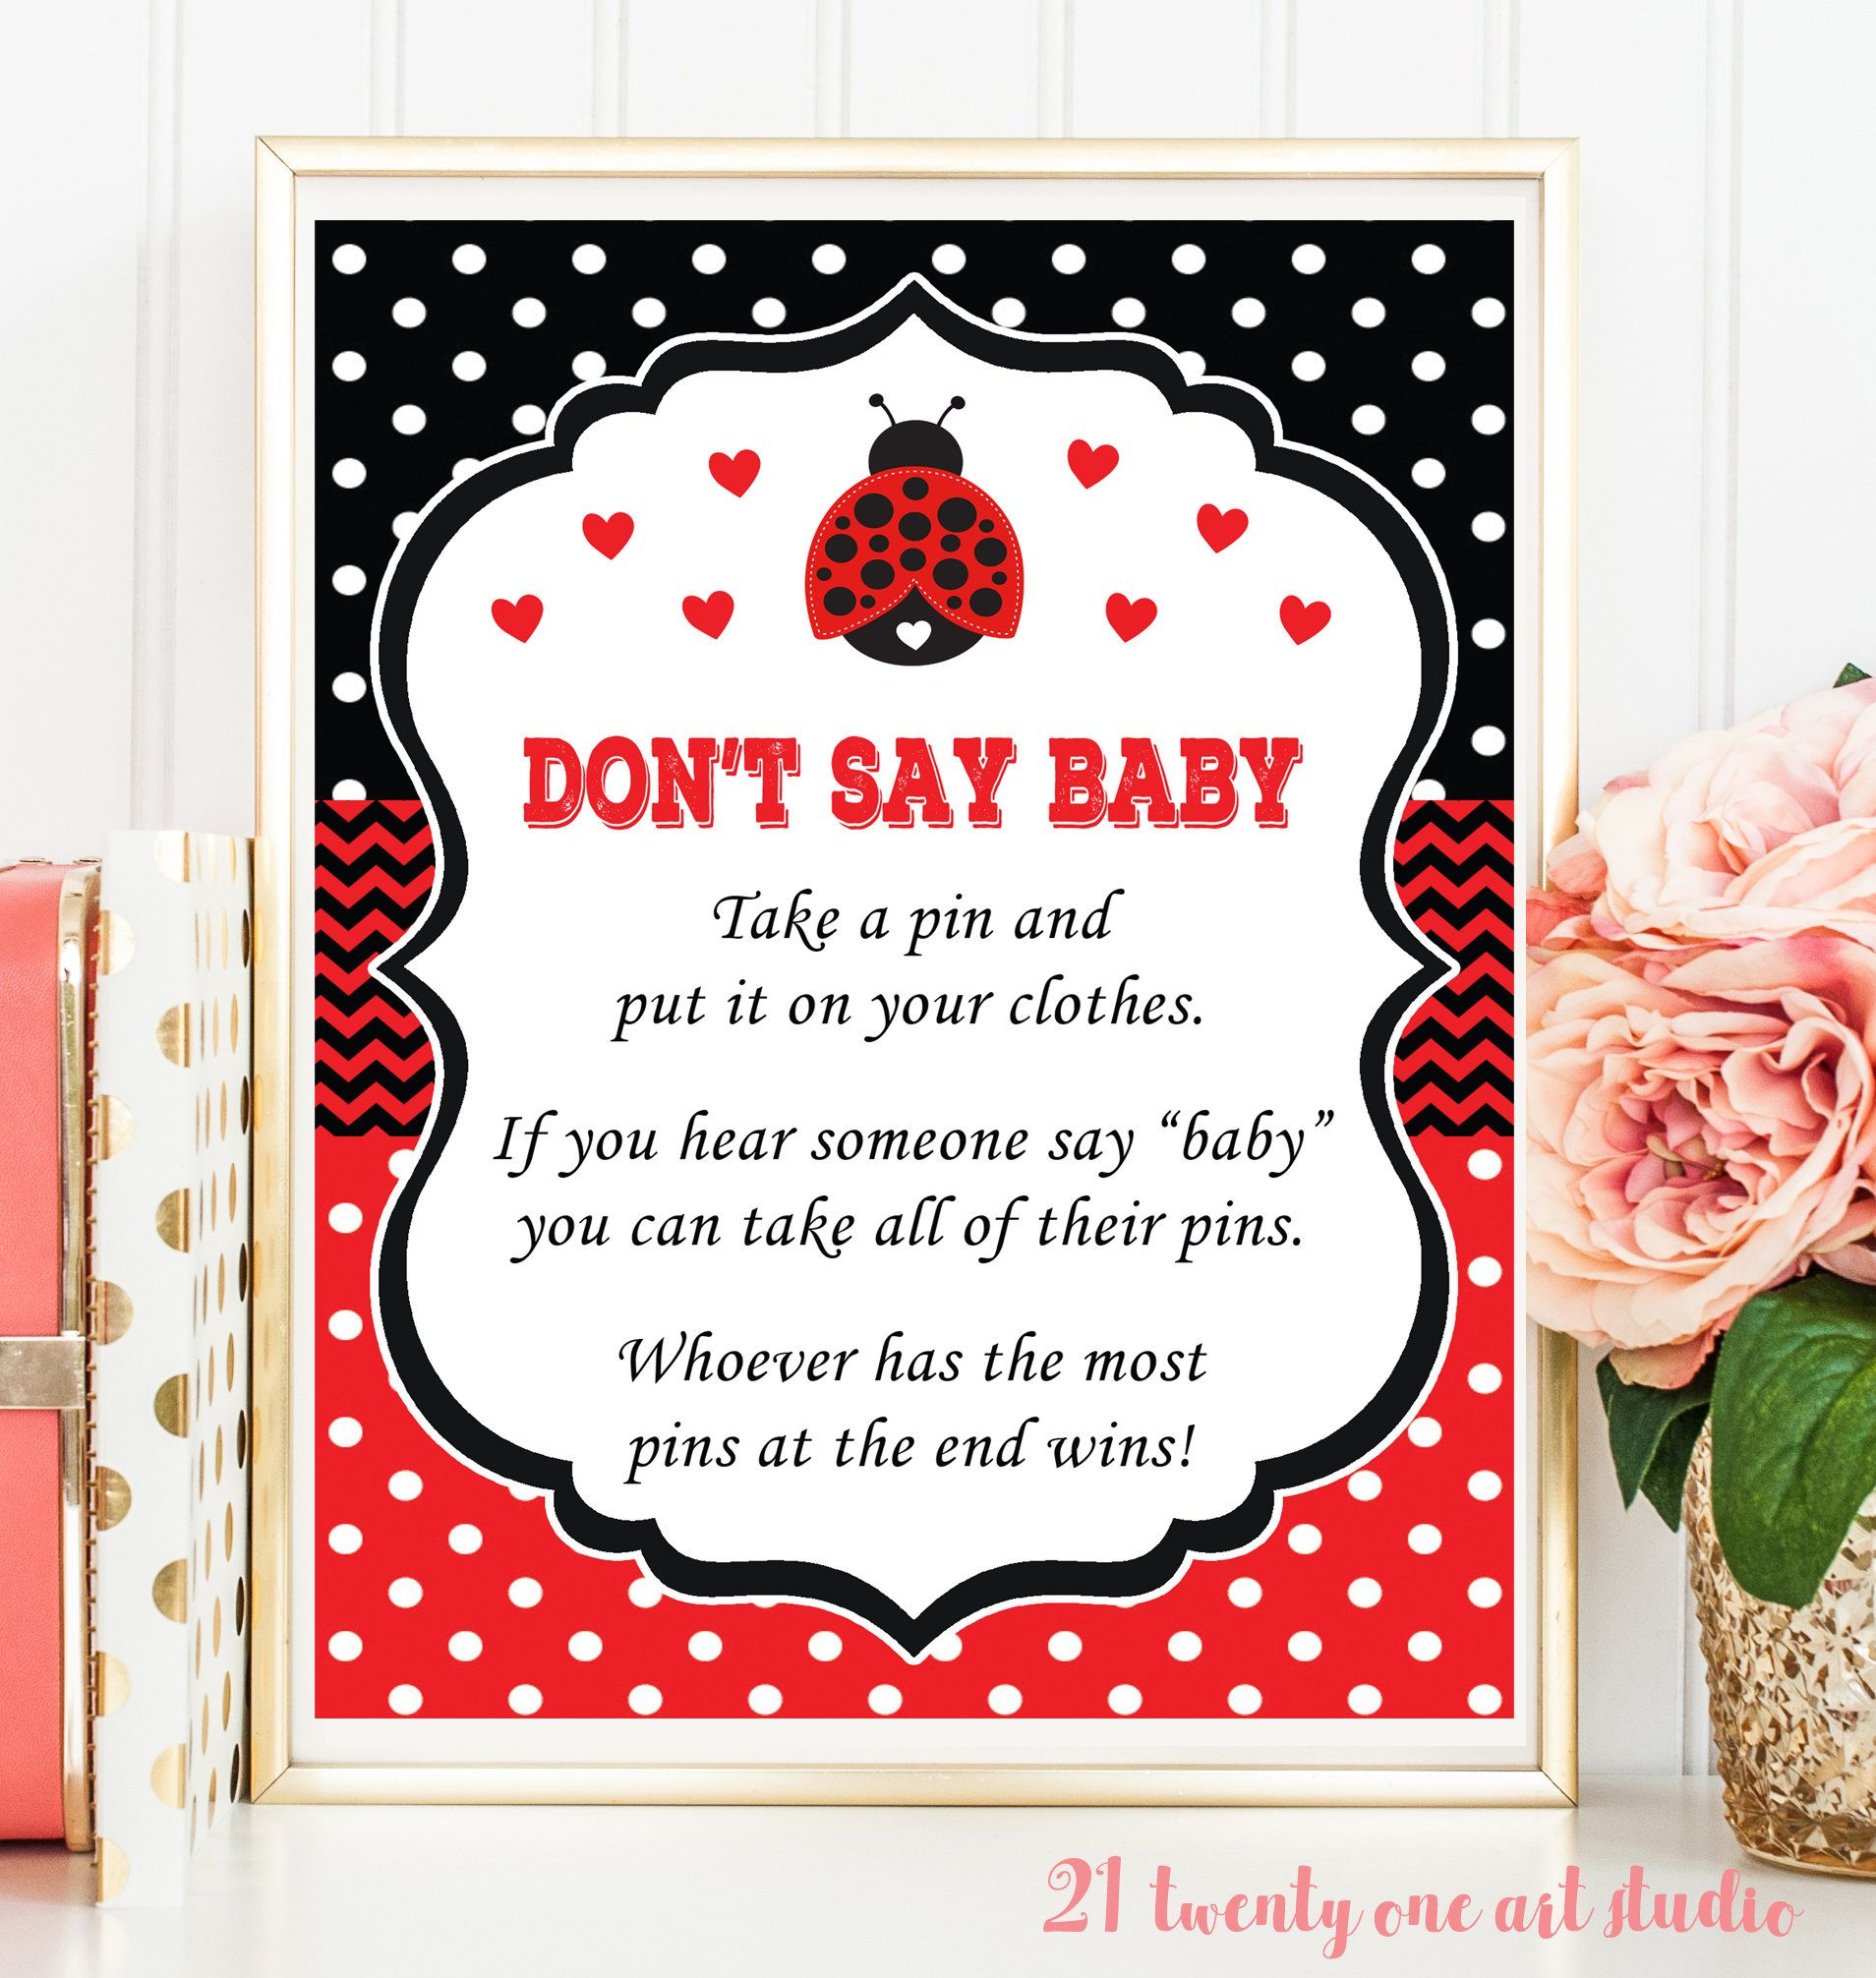 Dorable Polka Dot Baby Shower Invitations Pictures - Invitations and ...